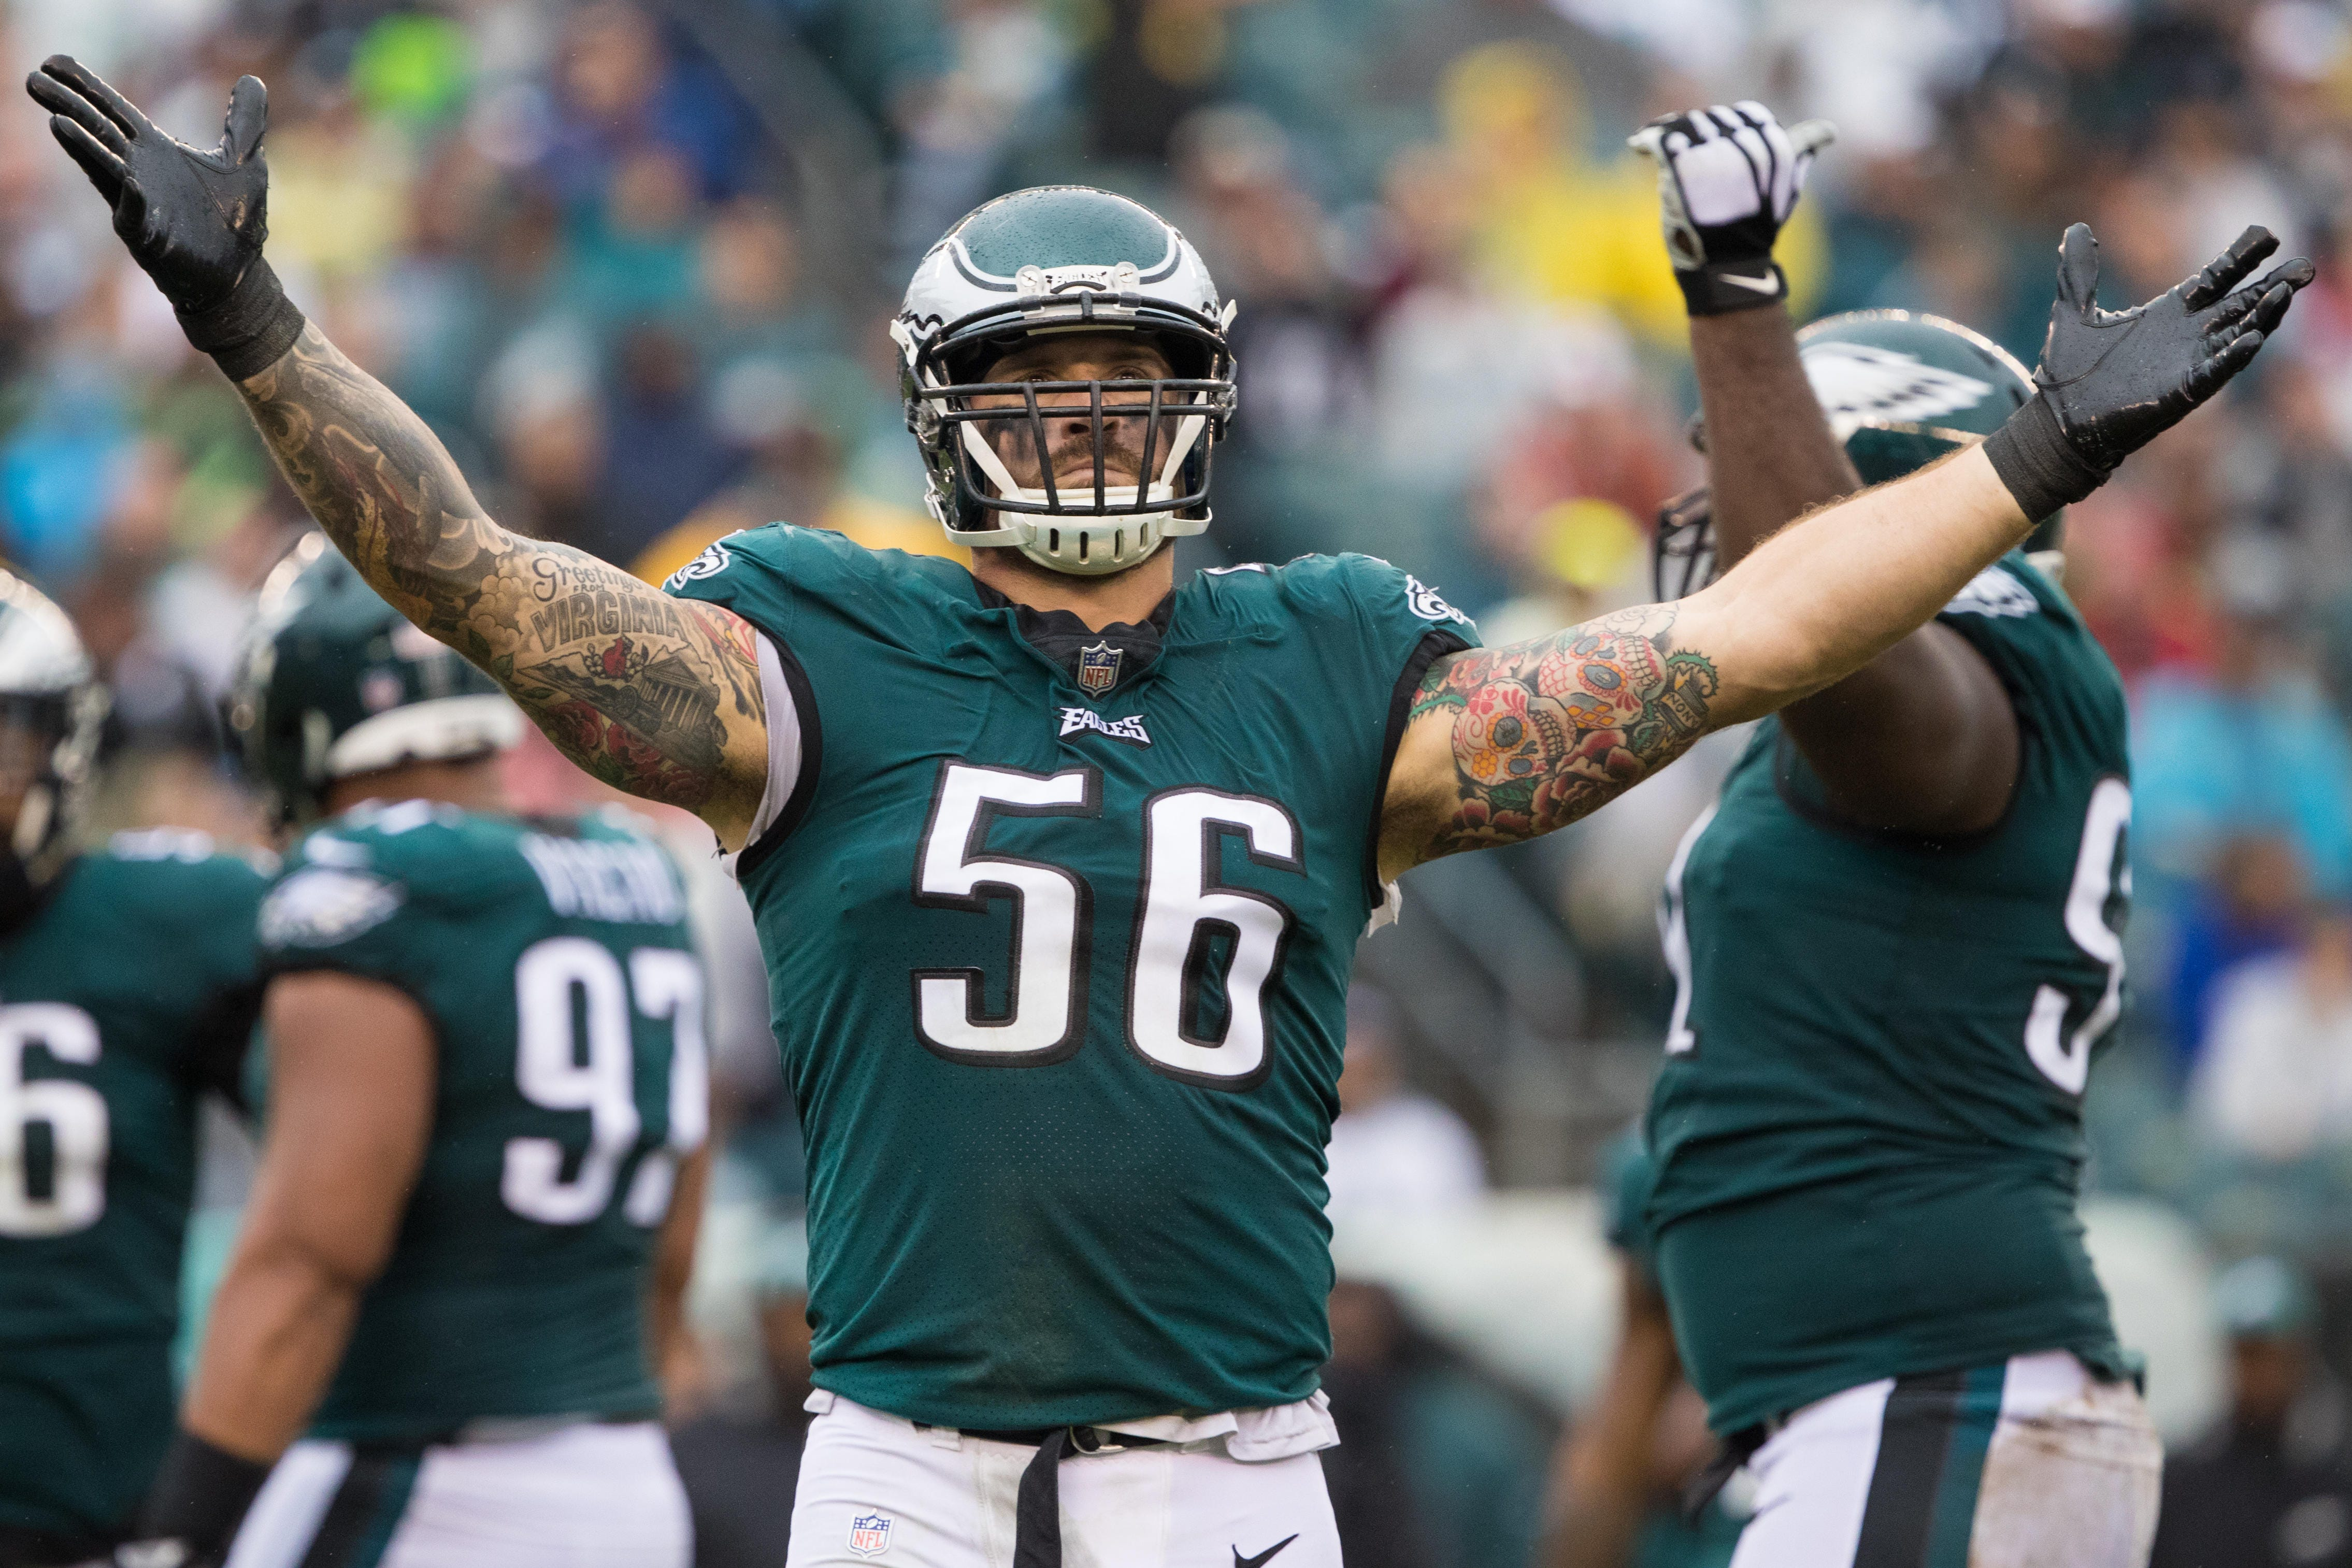 Philadelphia Eagles' Chris Long announces retirement from NFL in Twitter post